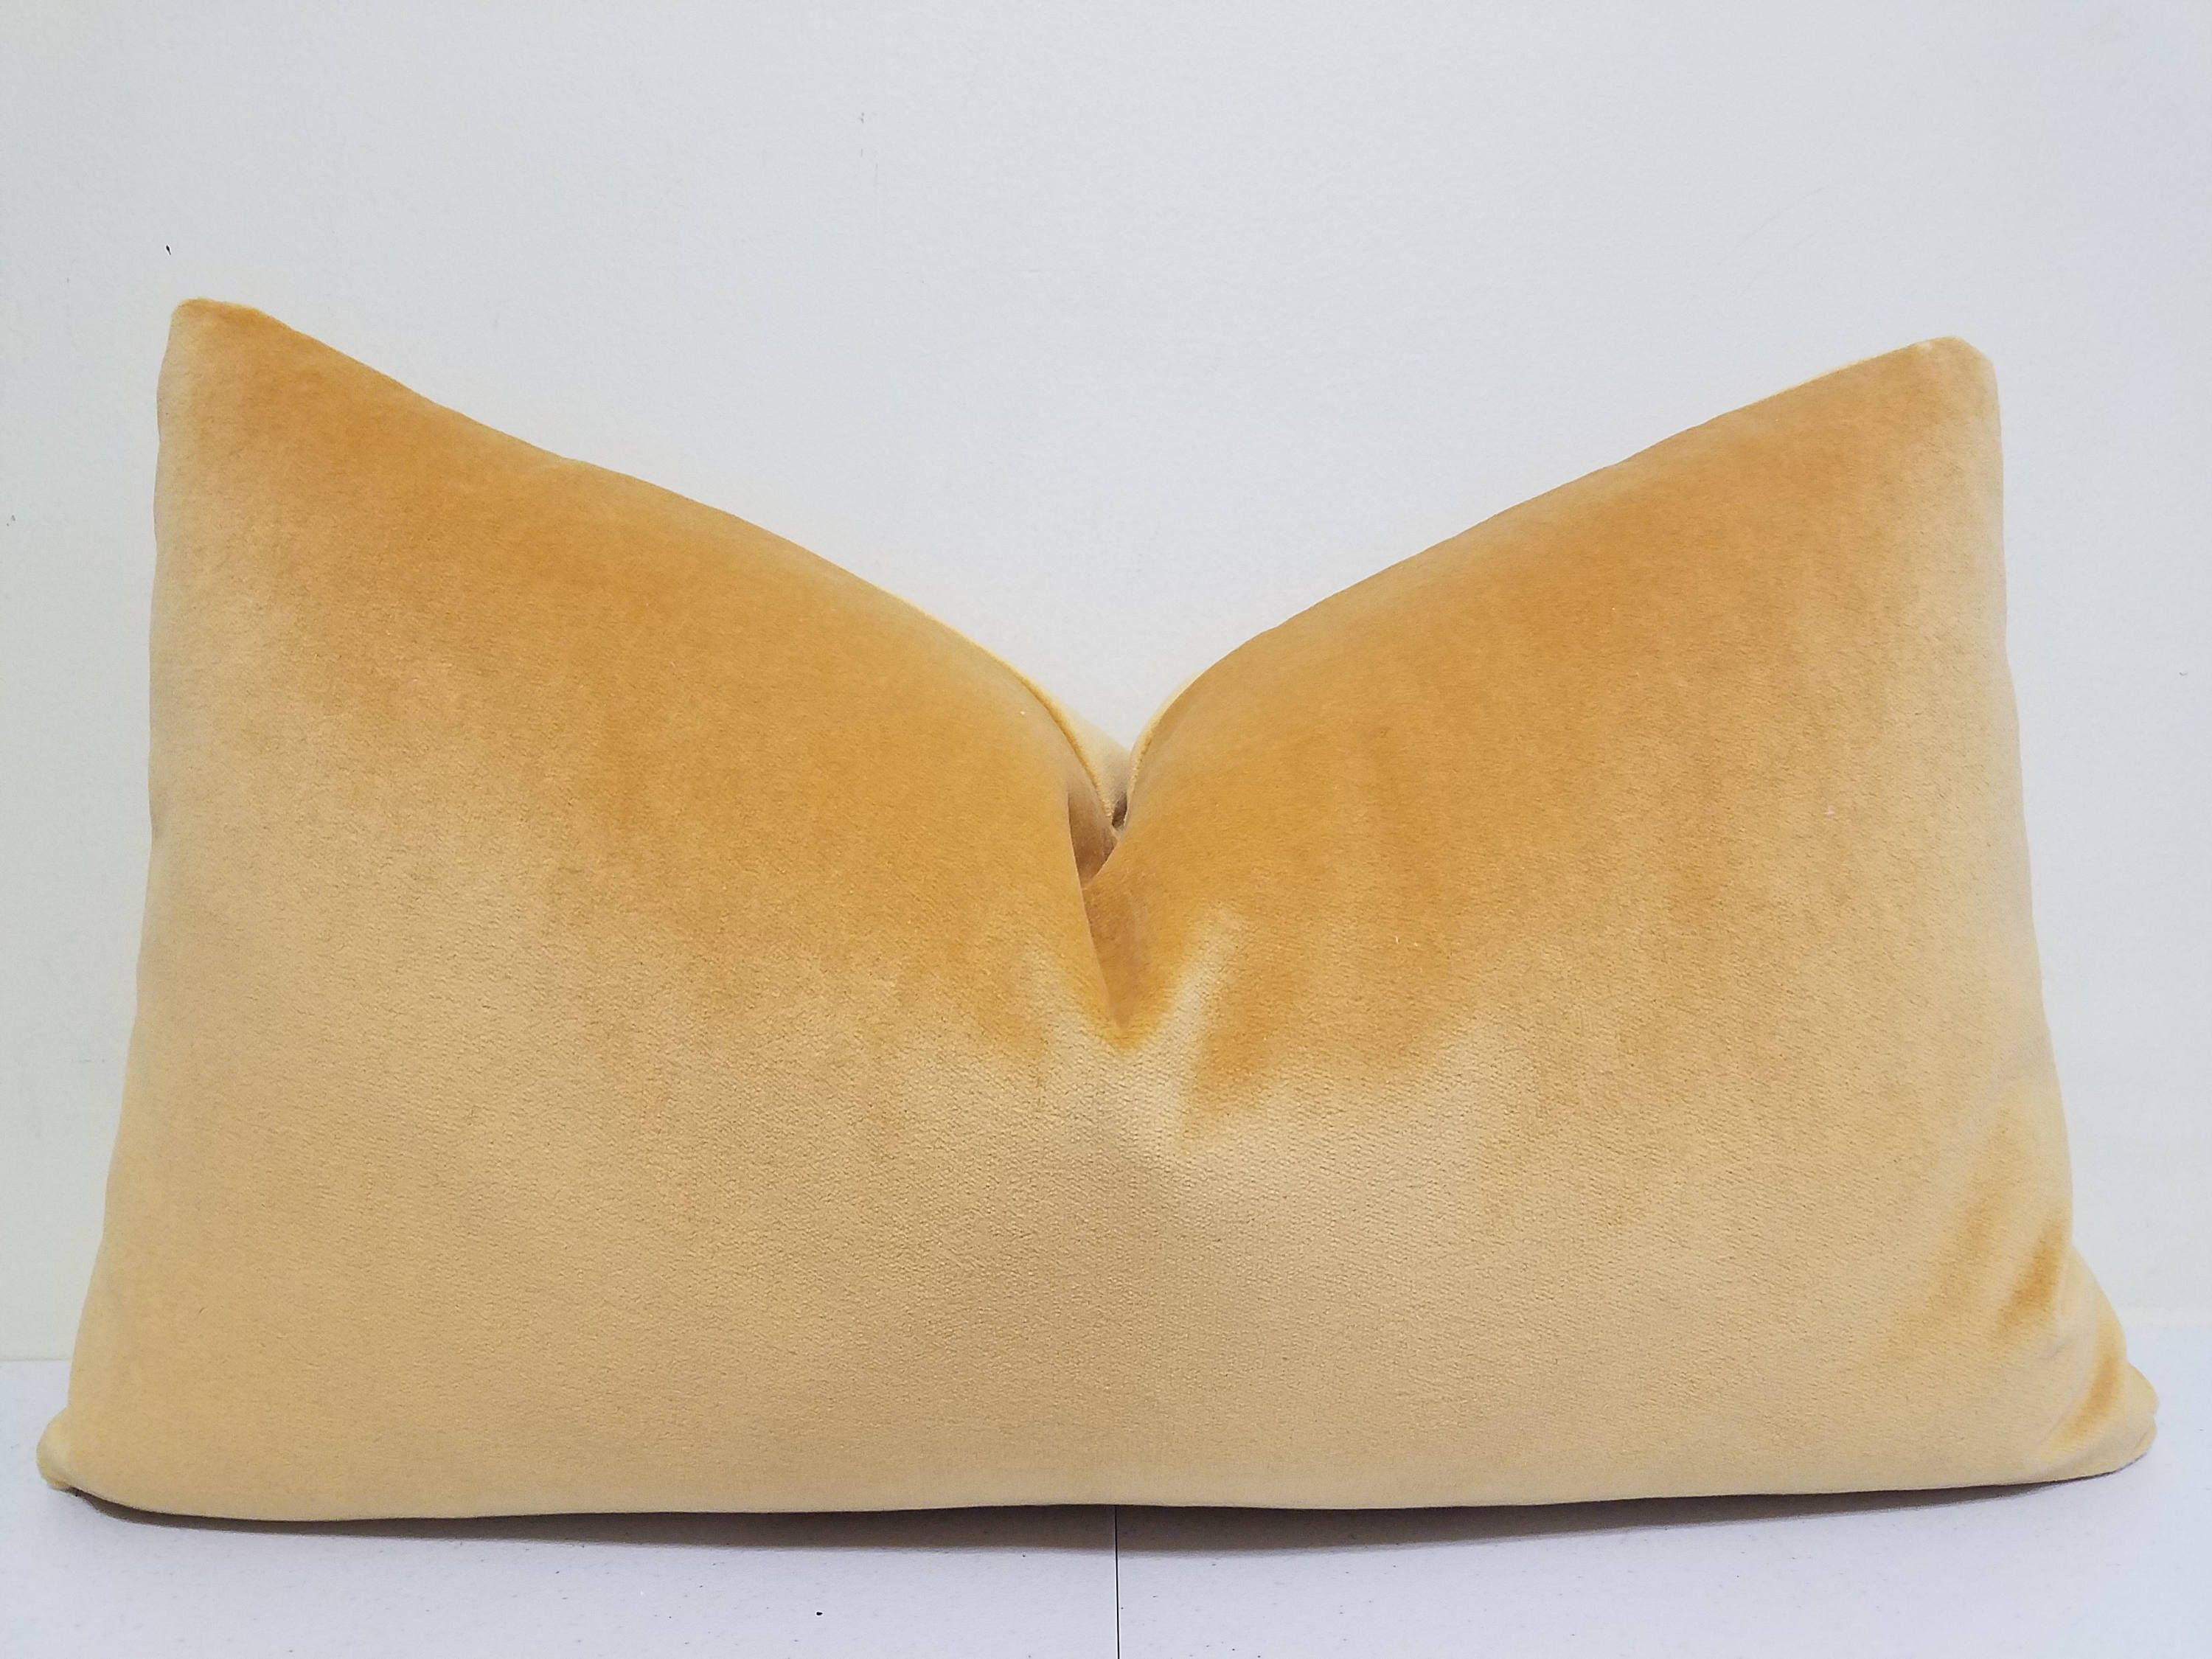 Throw Pillows Gif : Gold Yellow Velvet Lumbar Pillow Cover -velvet Lumbar - Decorative throw pillow - Gold Velvet ...